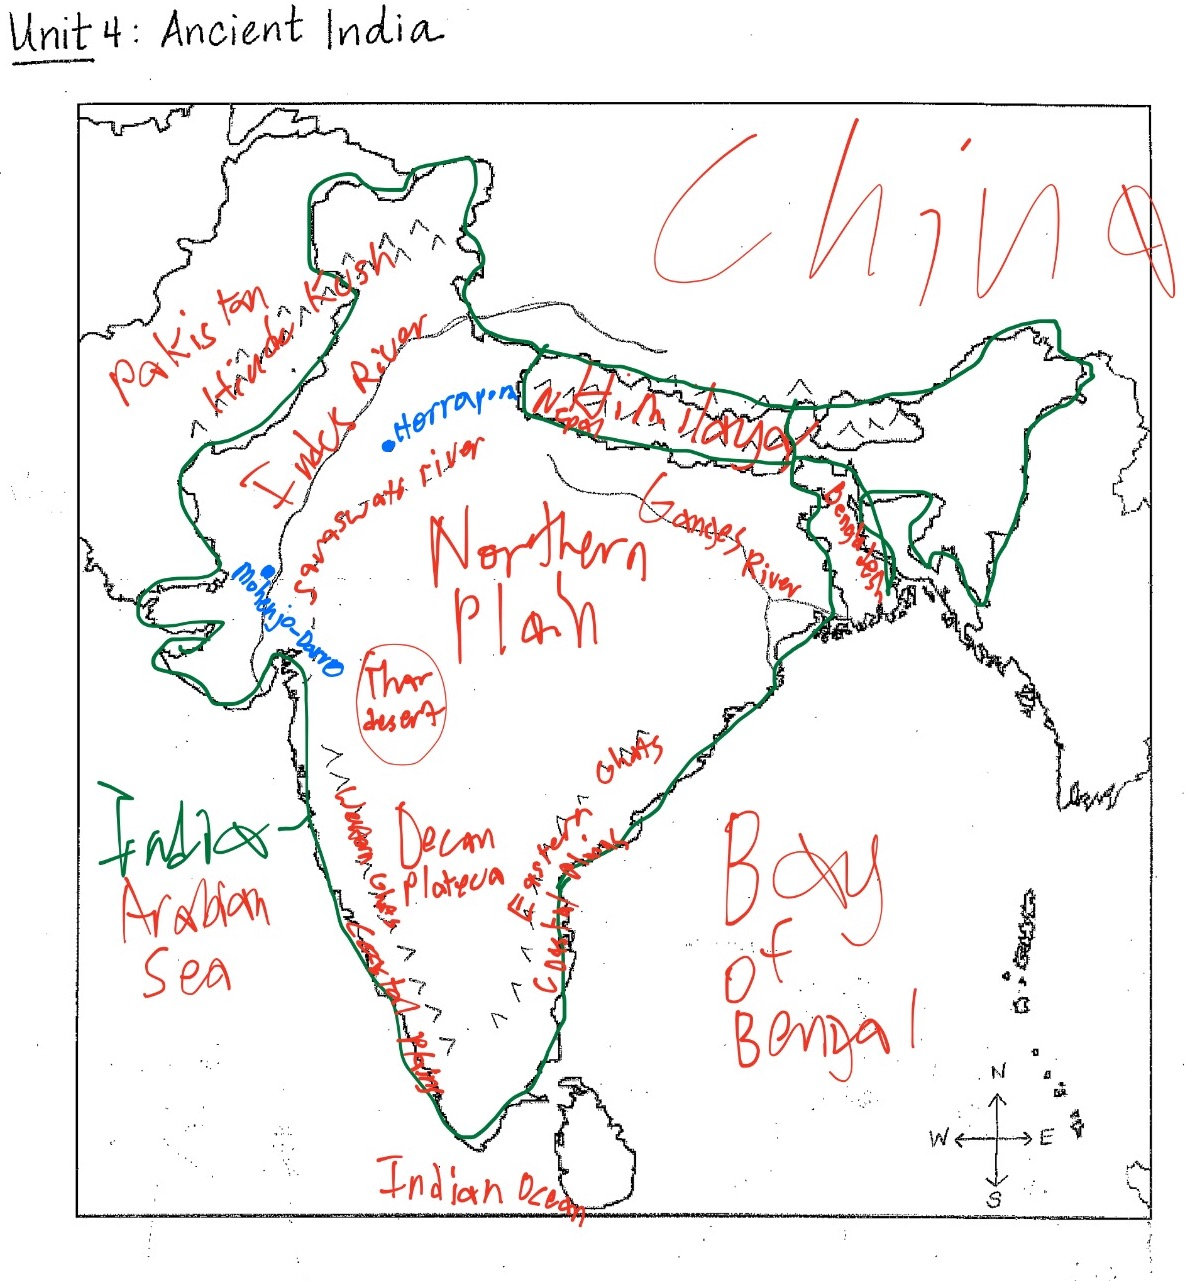 Ancient India Map Ancient India Map (S.S.) Ancient India Map